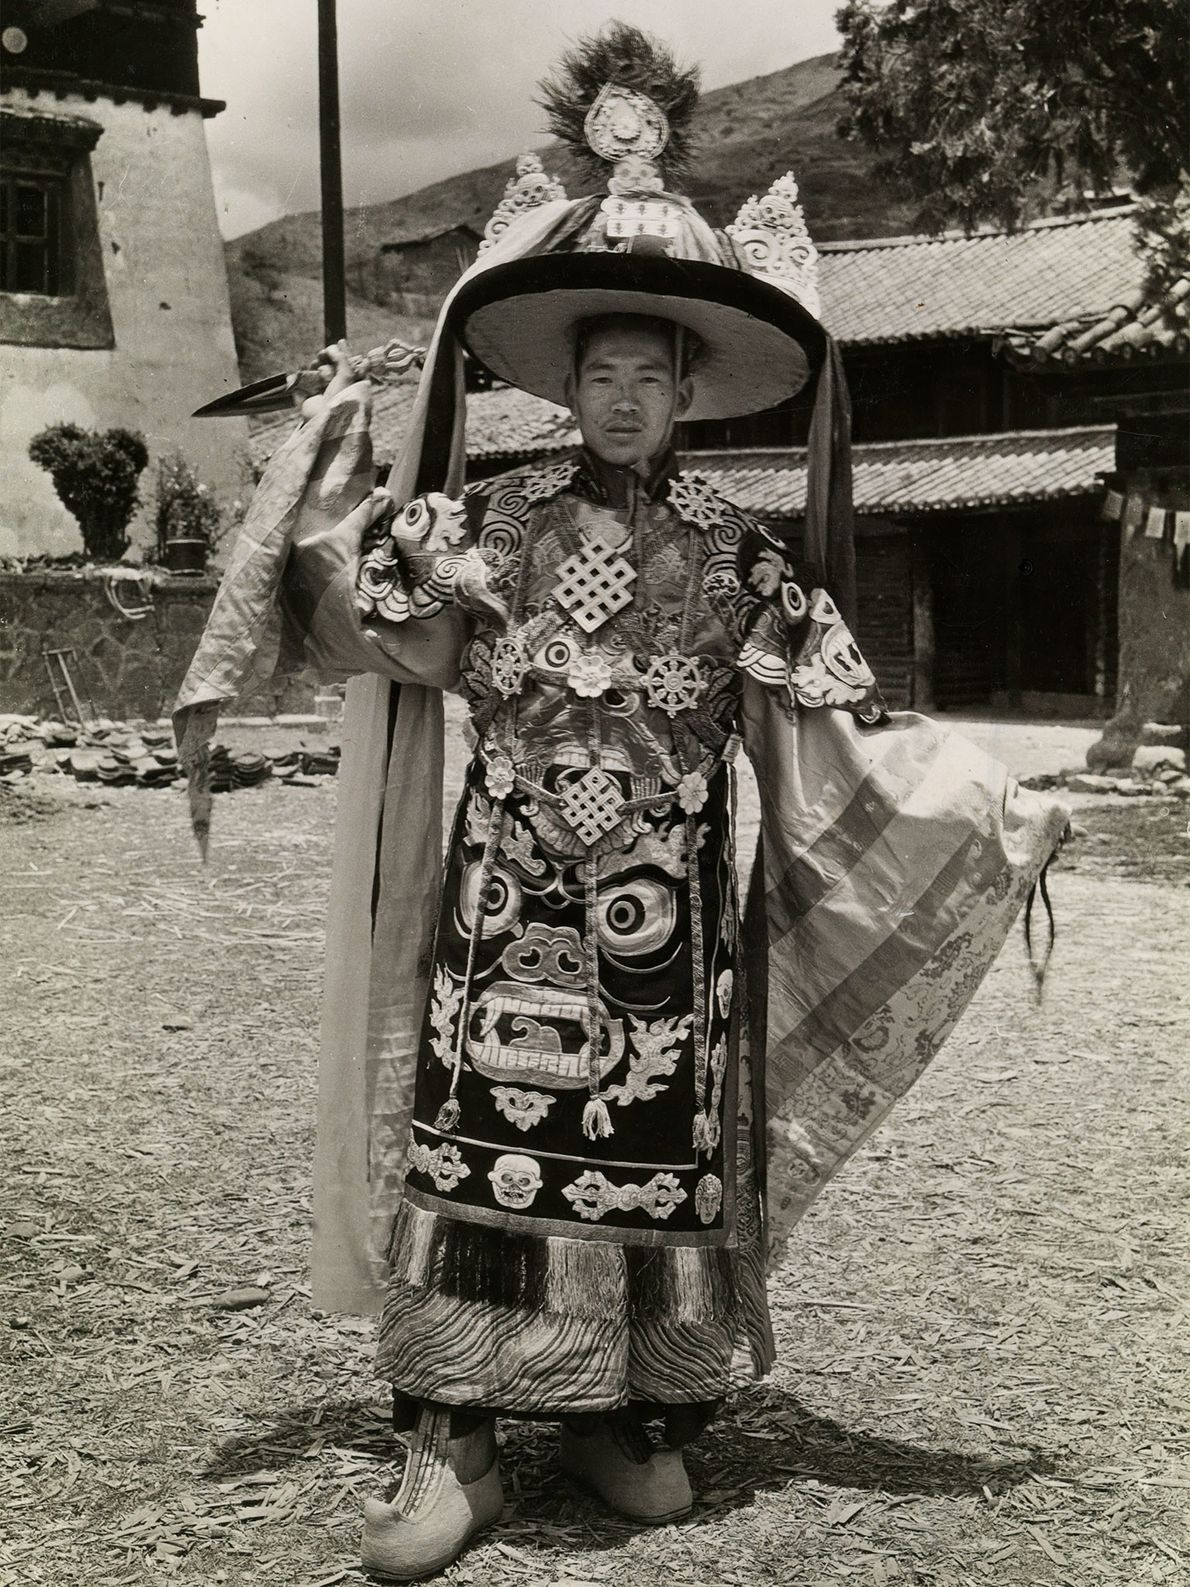 The principal dancer who performed the Dance of the Black Hat in the 1920s at China's ...